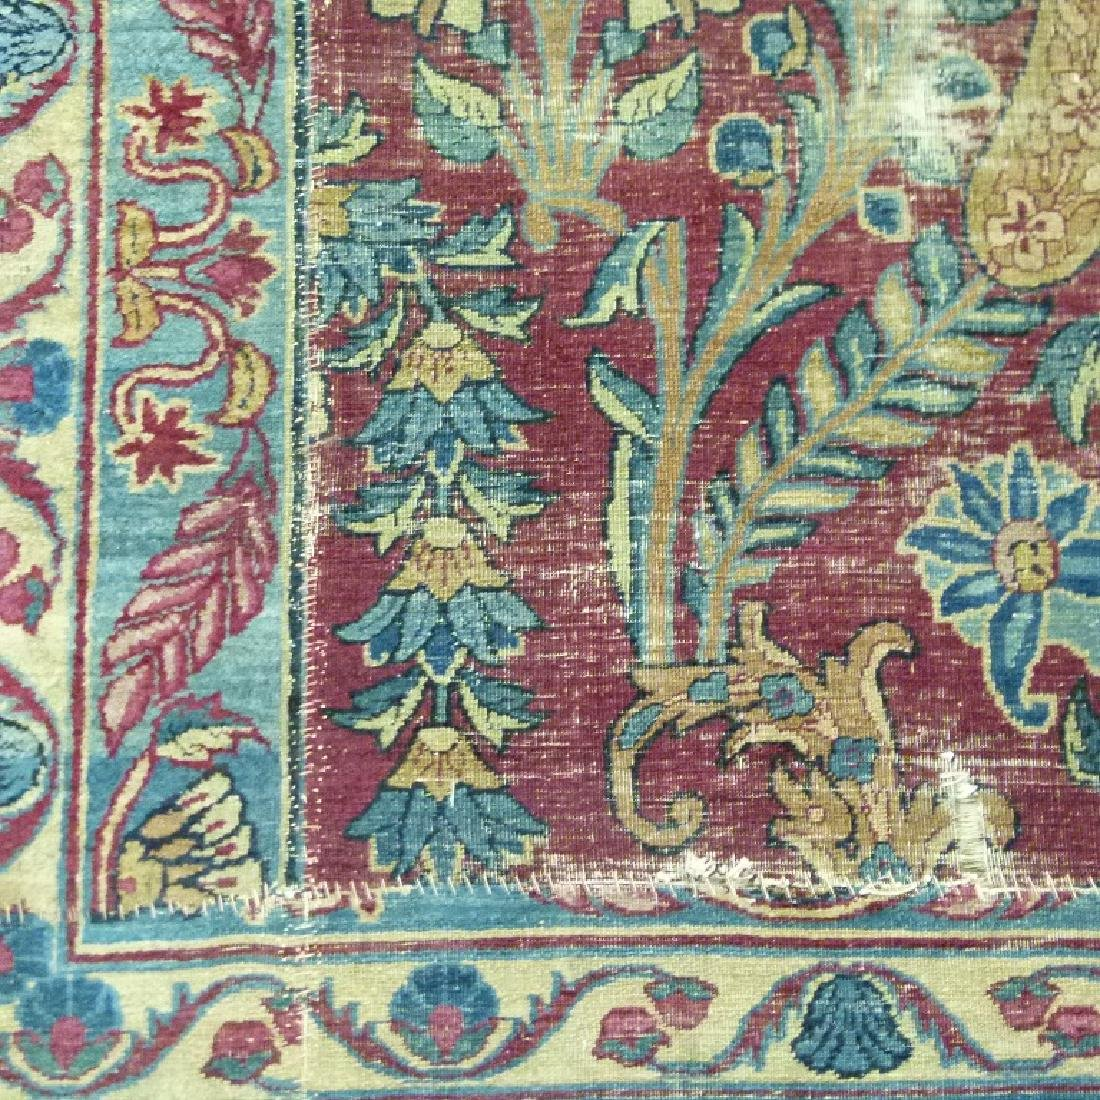 ANTIQUE SAROUK ORIENTAL CARPET (RE-SIZED) - 7